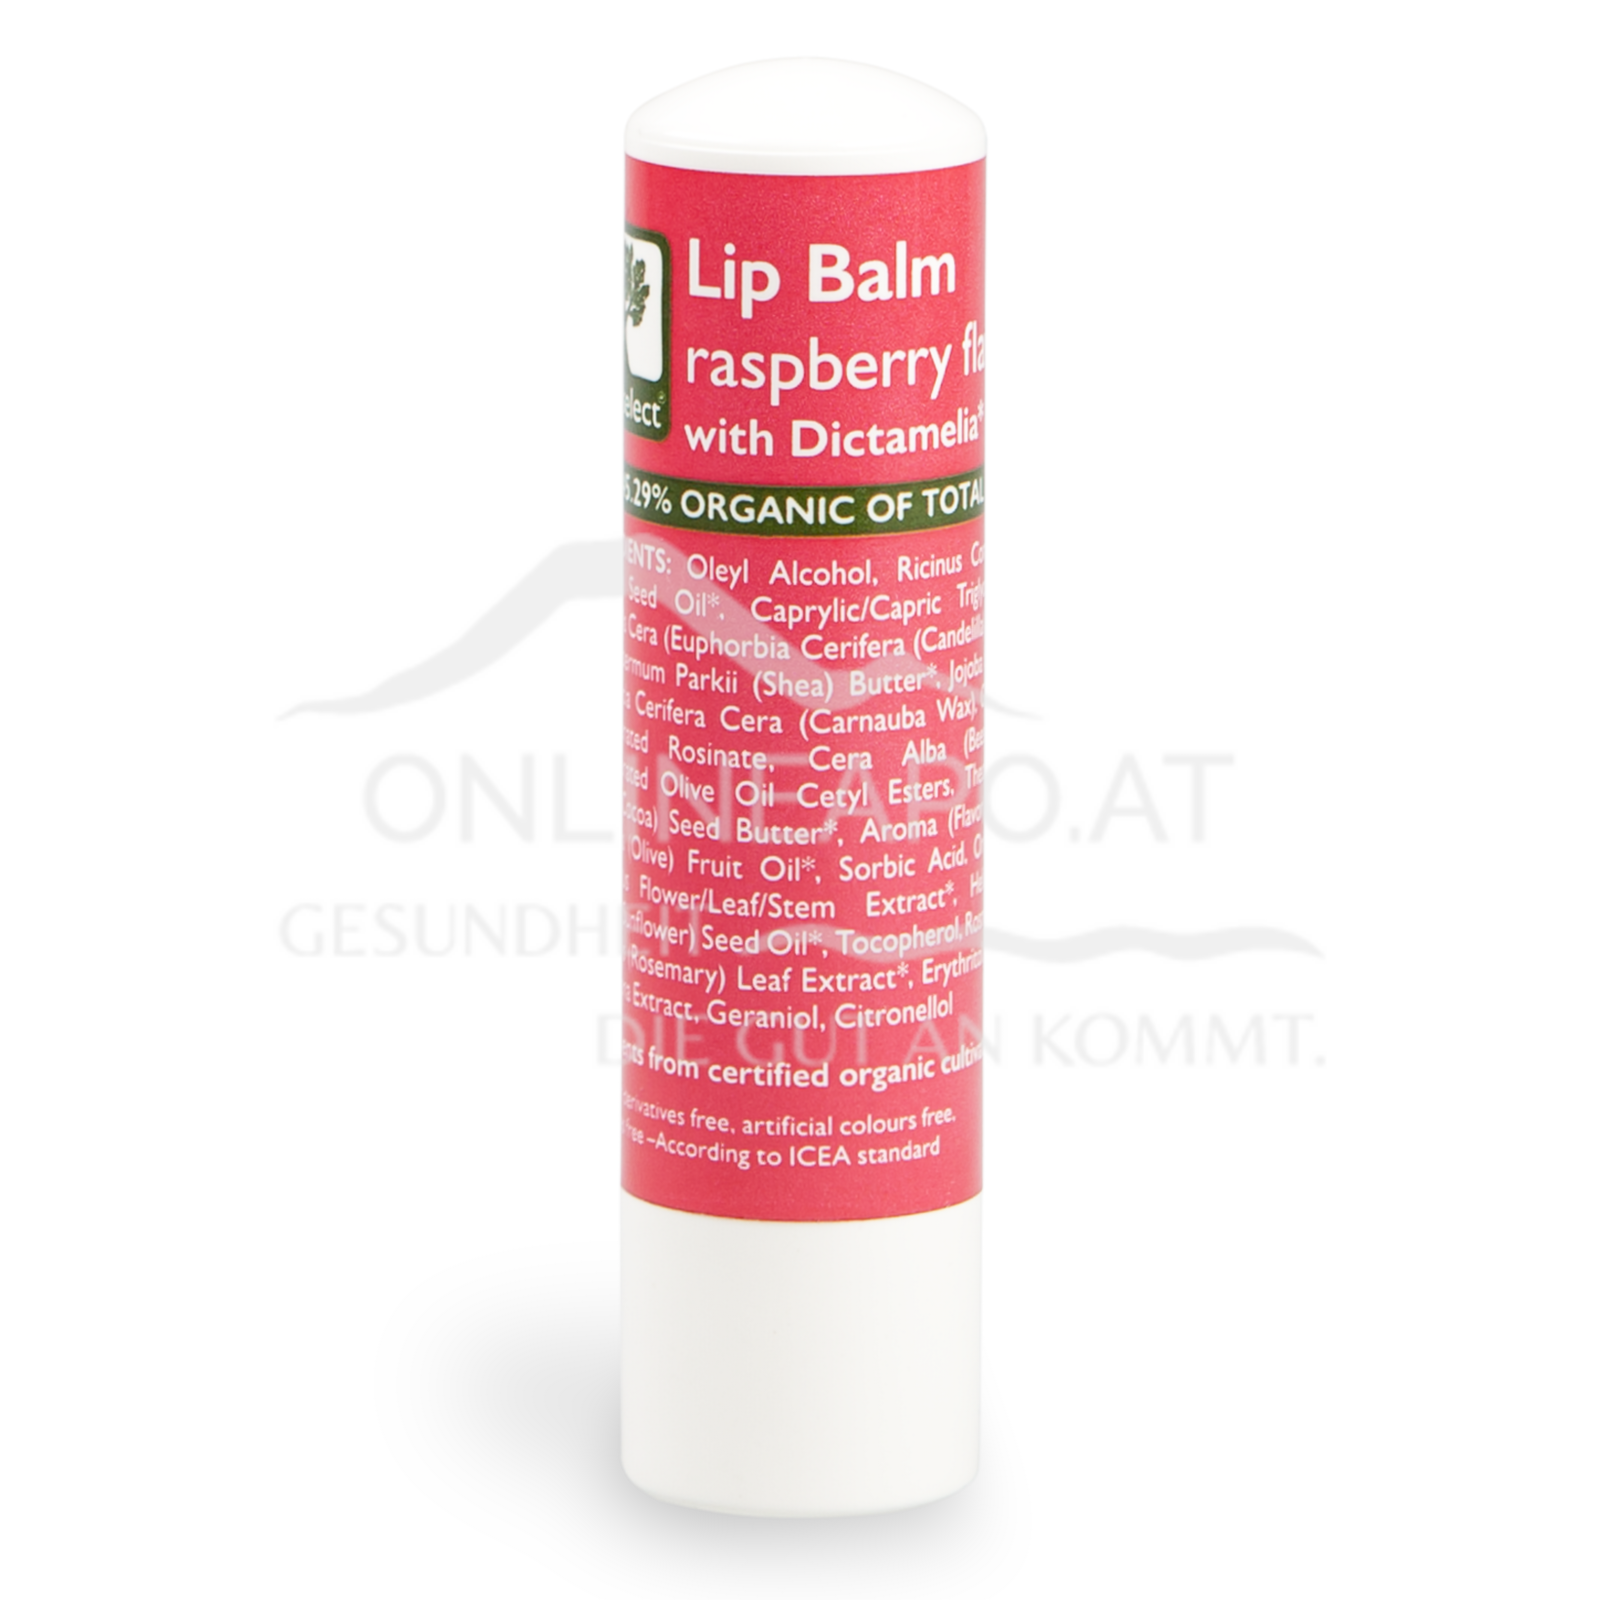 Bioselect Lip Balm raspberry flavor